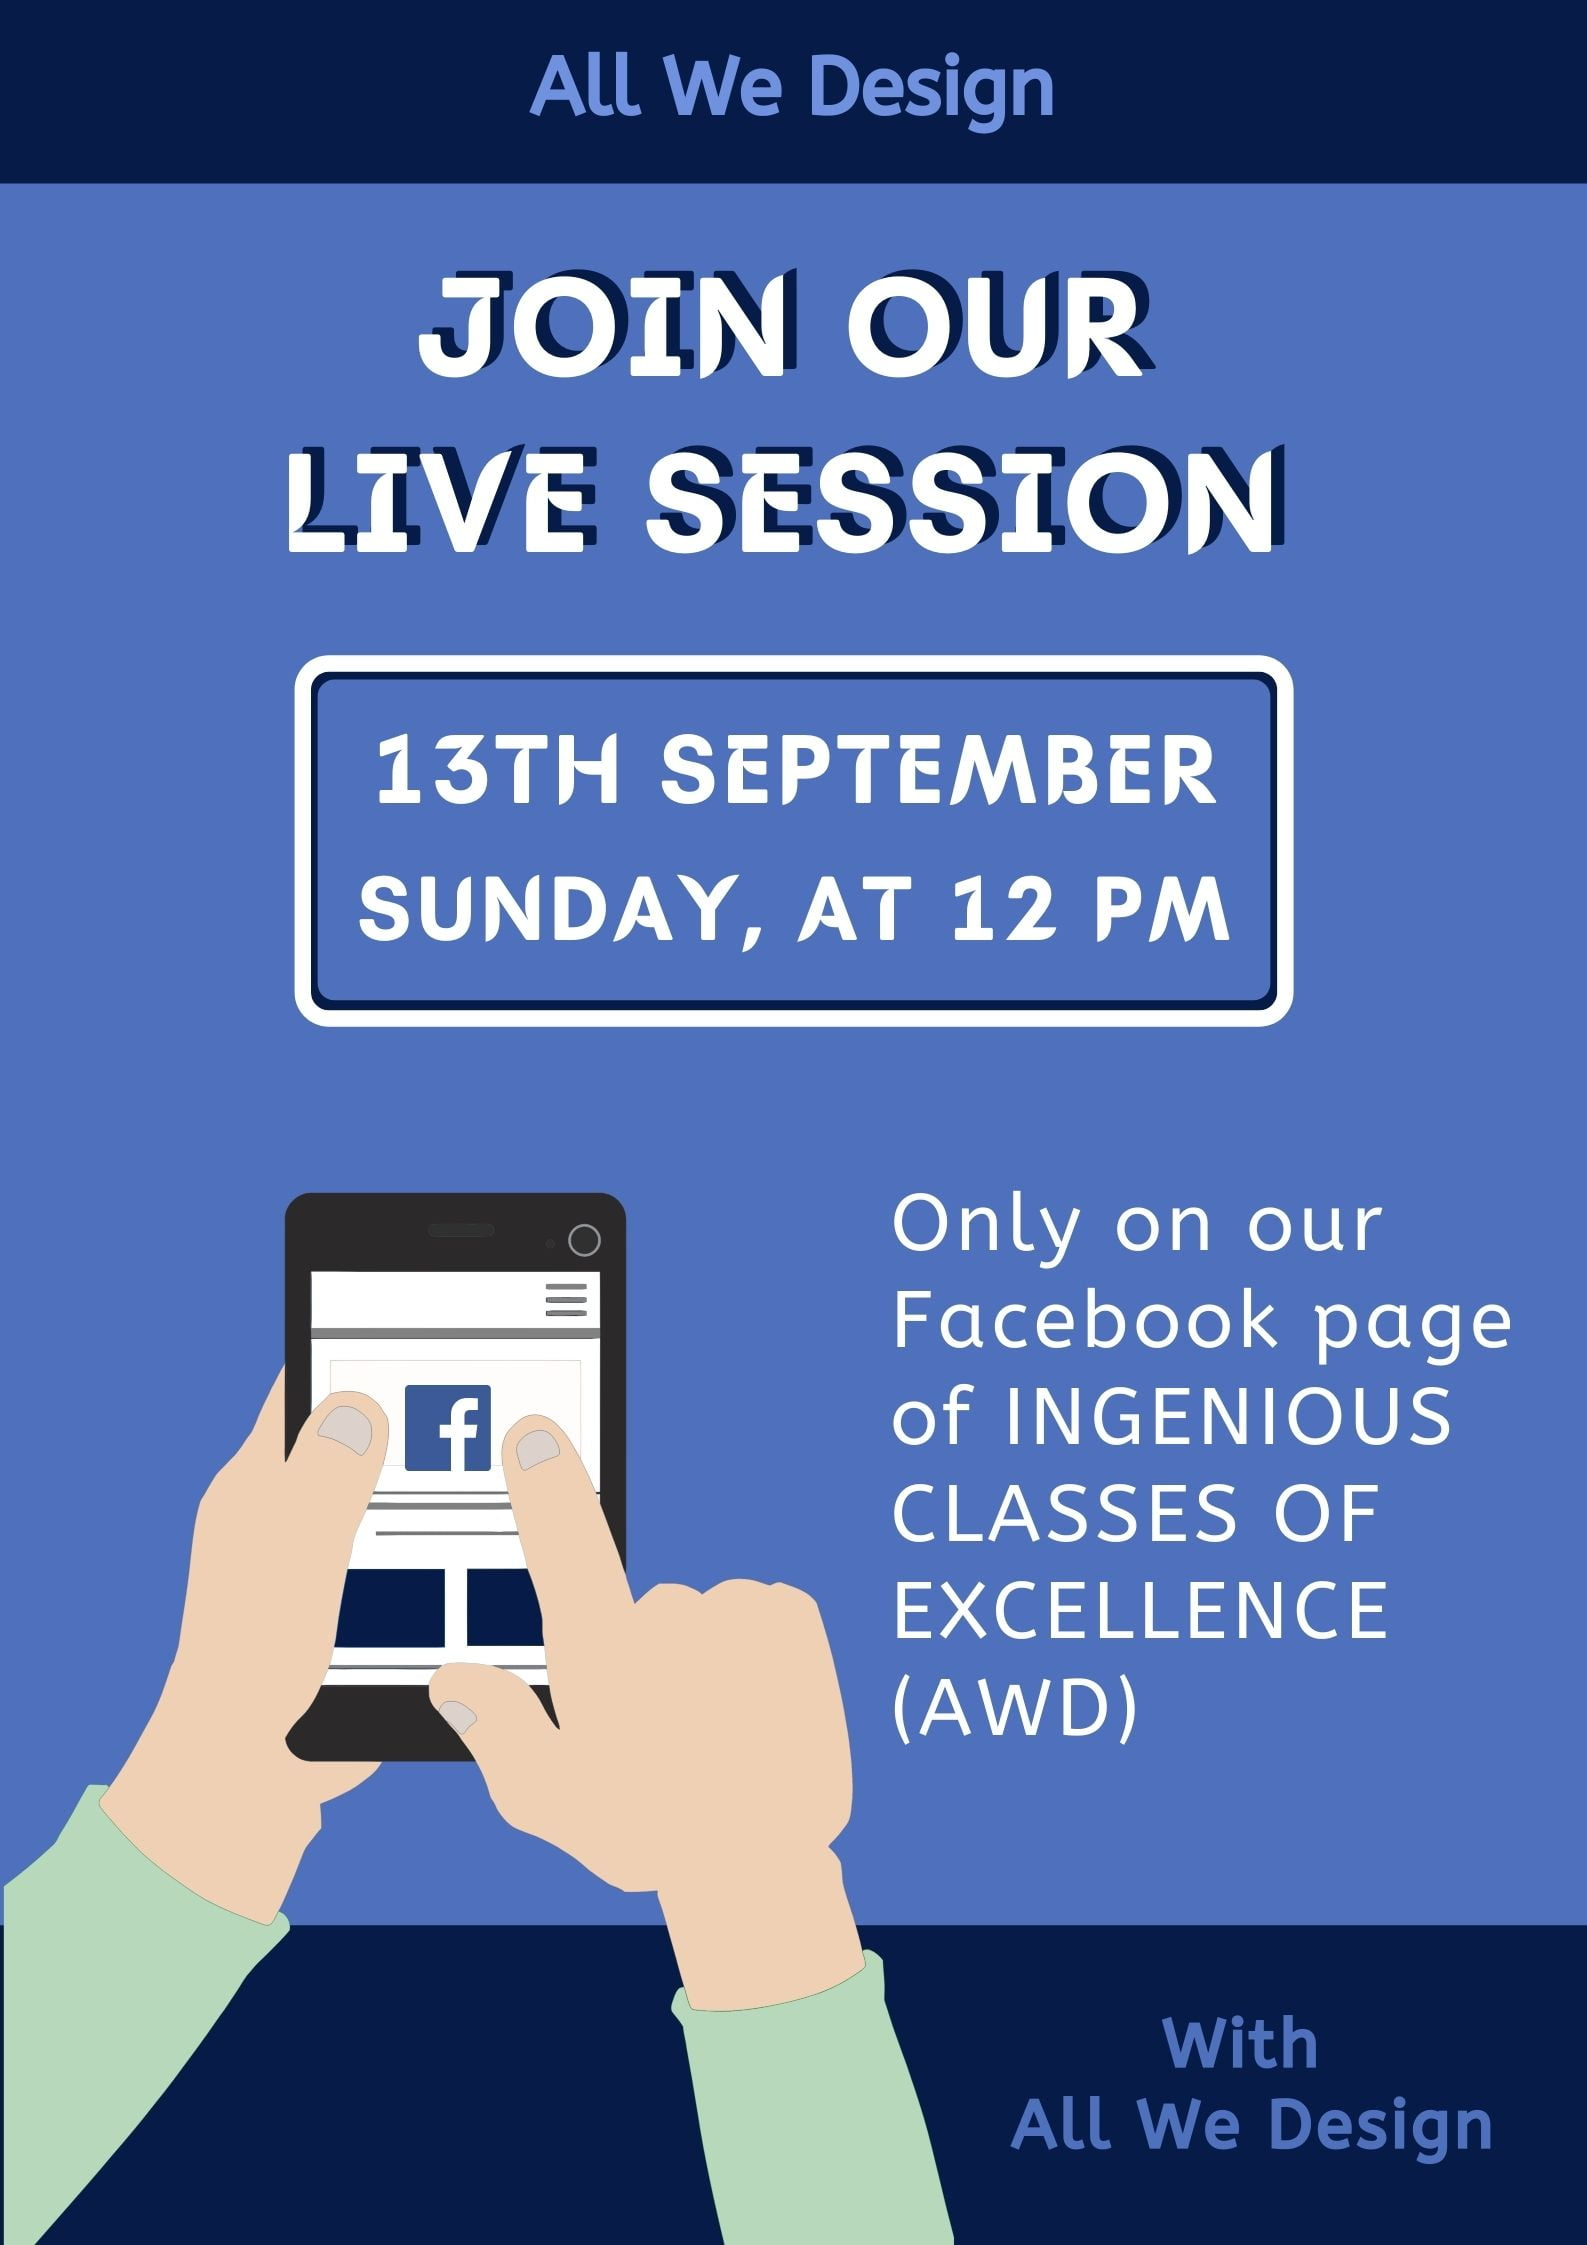 Live Session Notice Poster